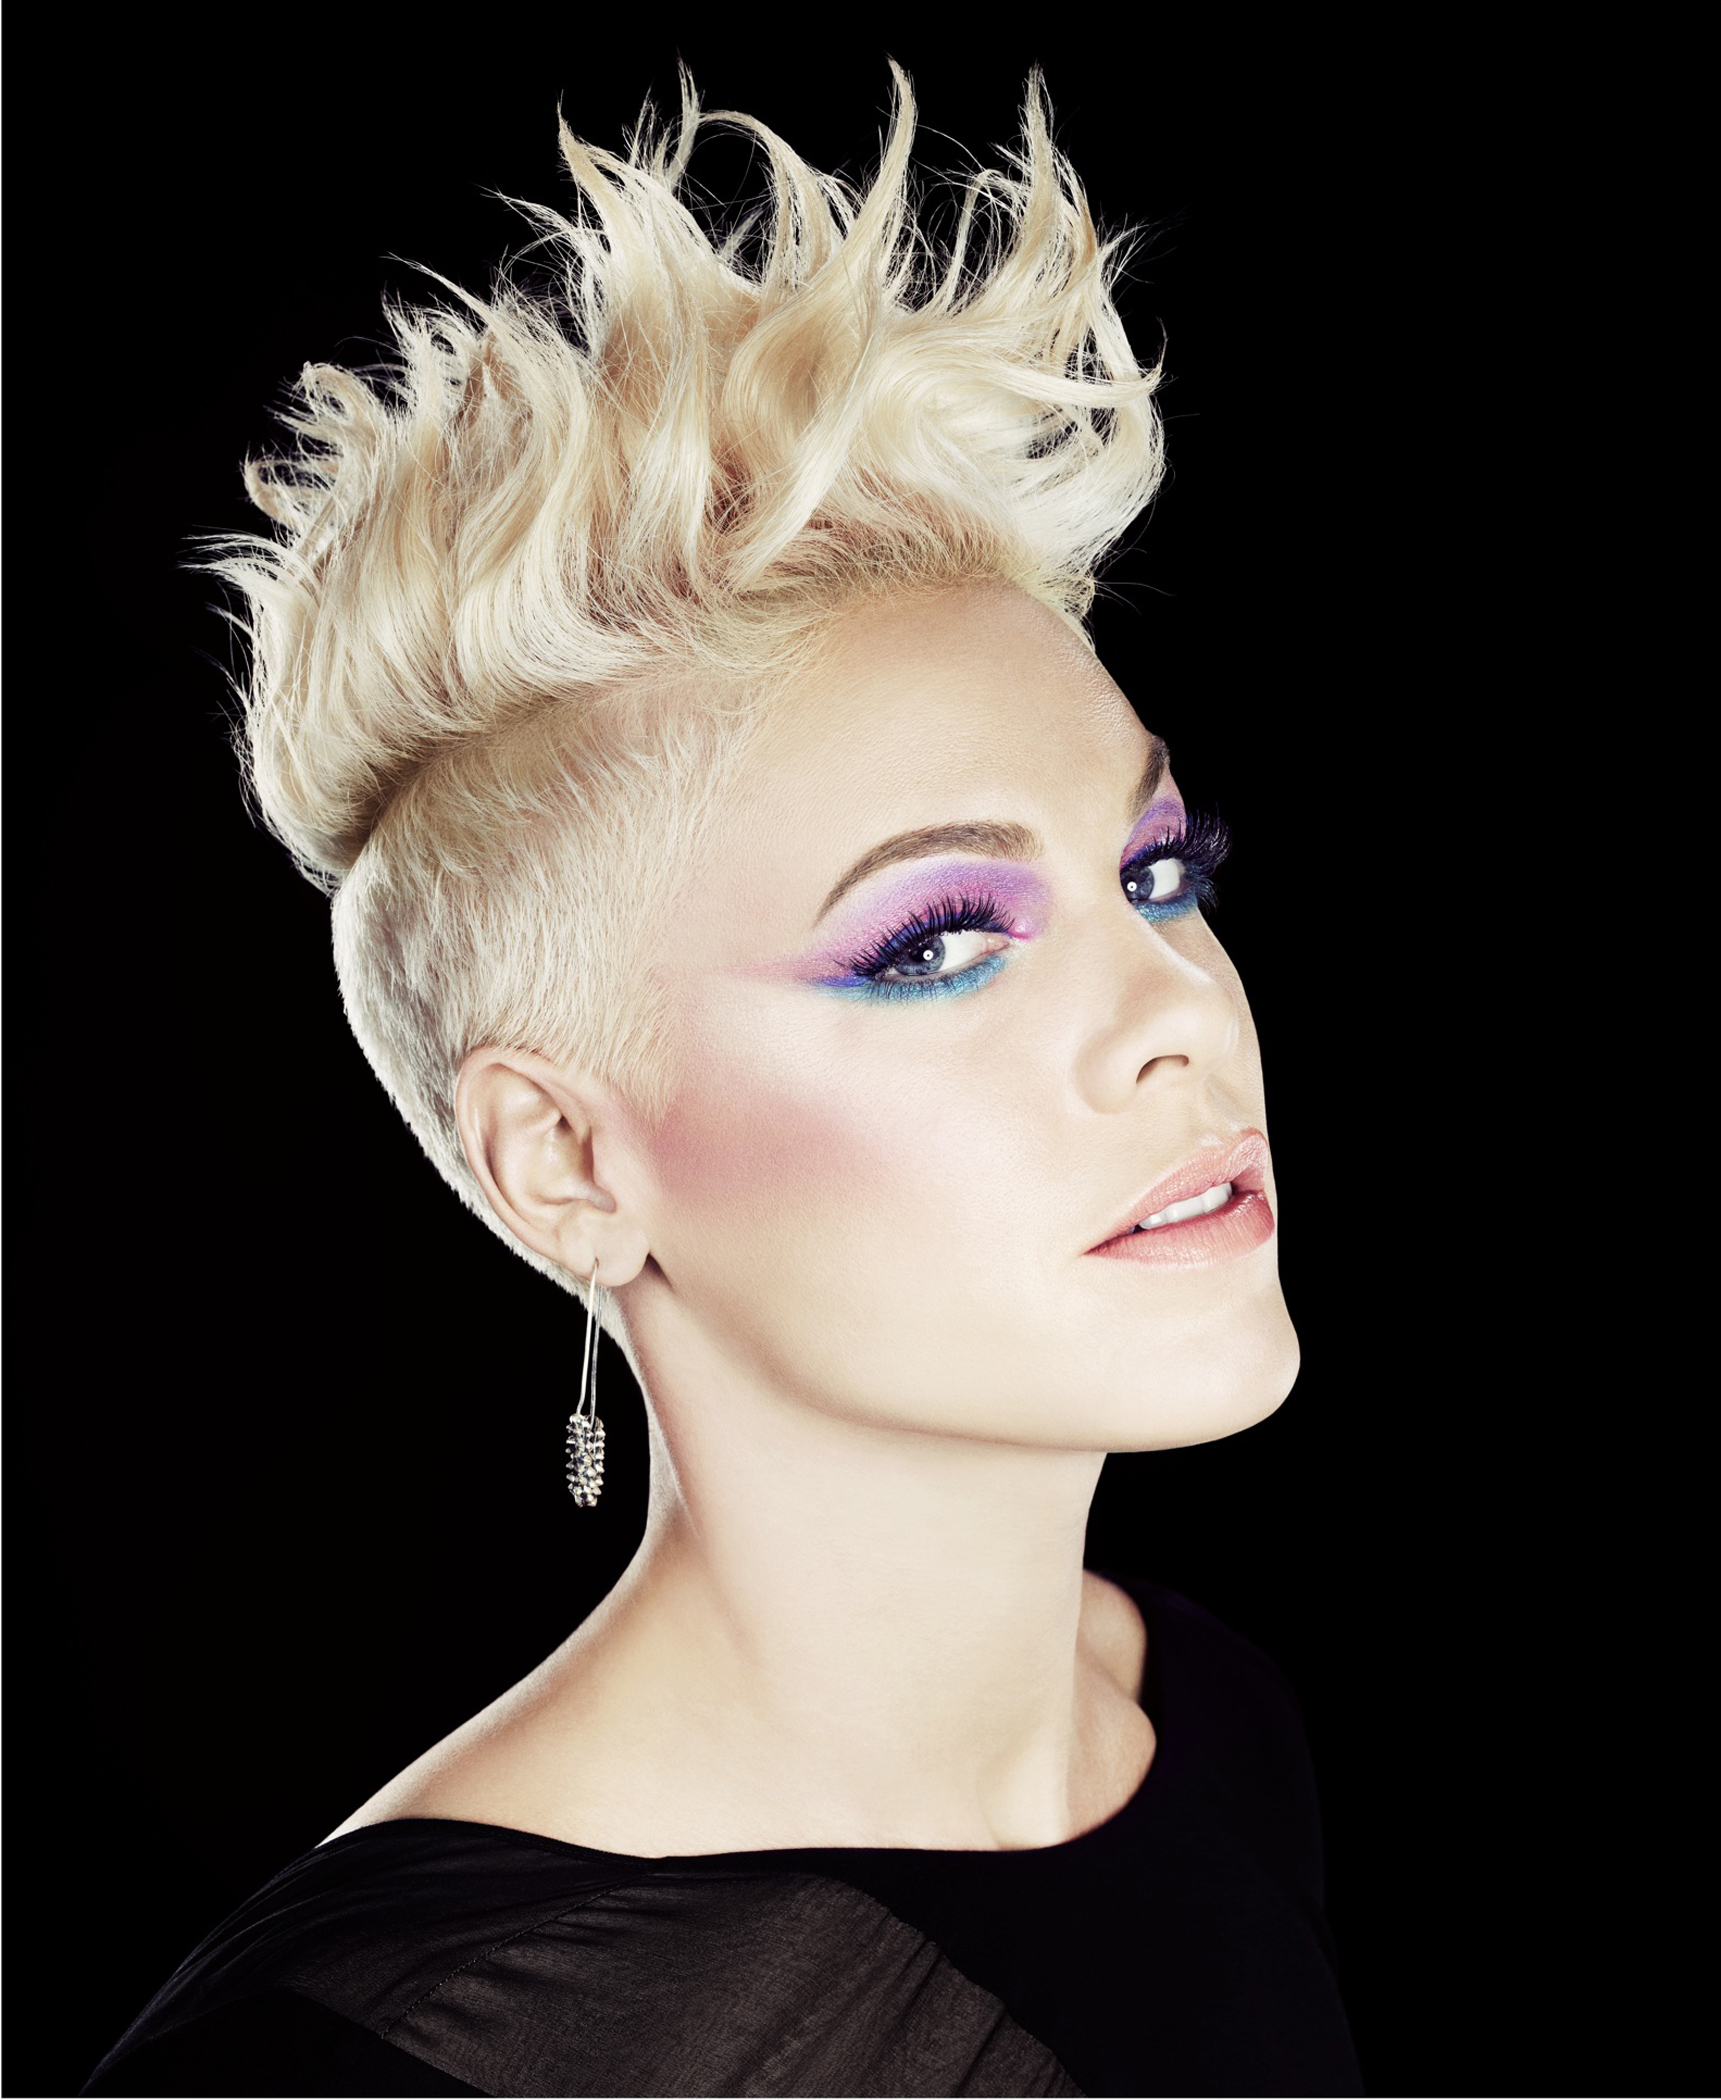 Category Songs by P nk Just Dance Wiki